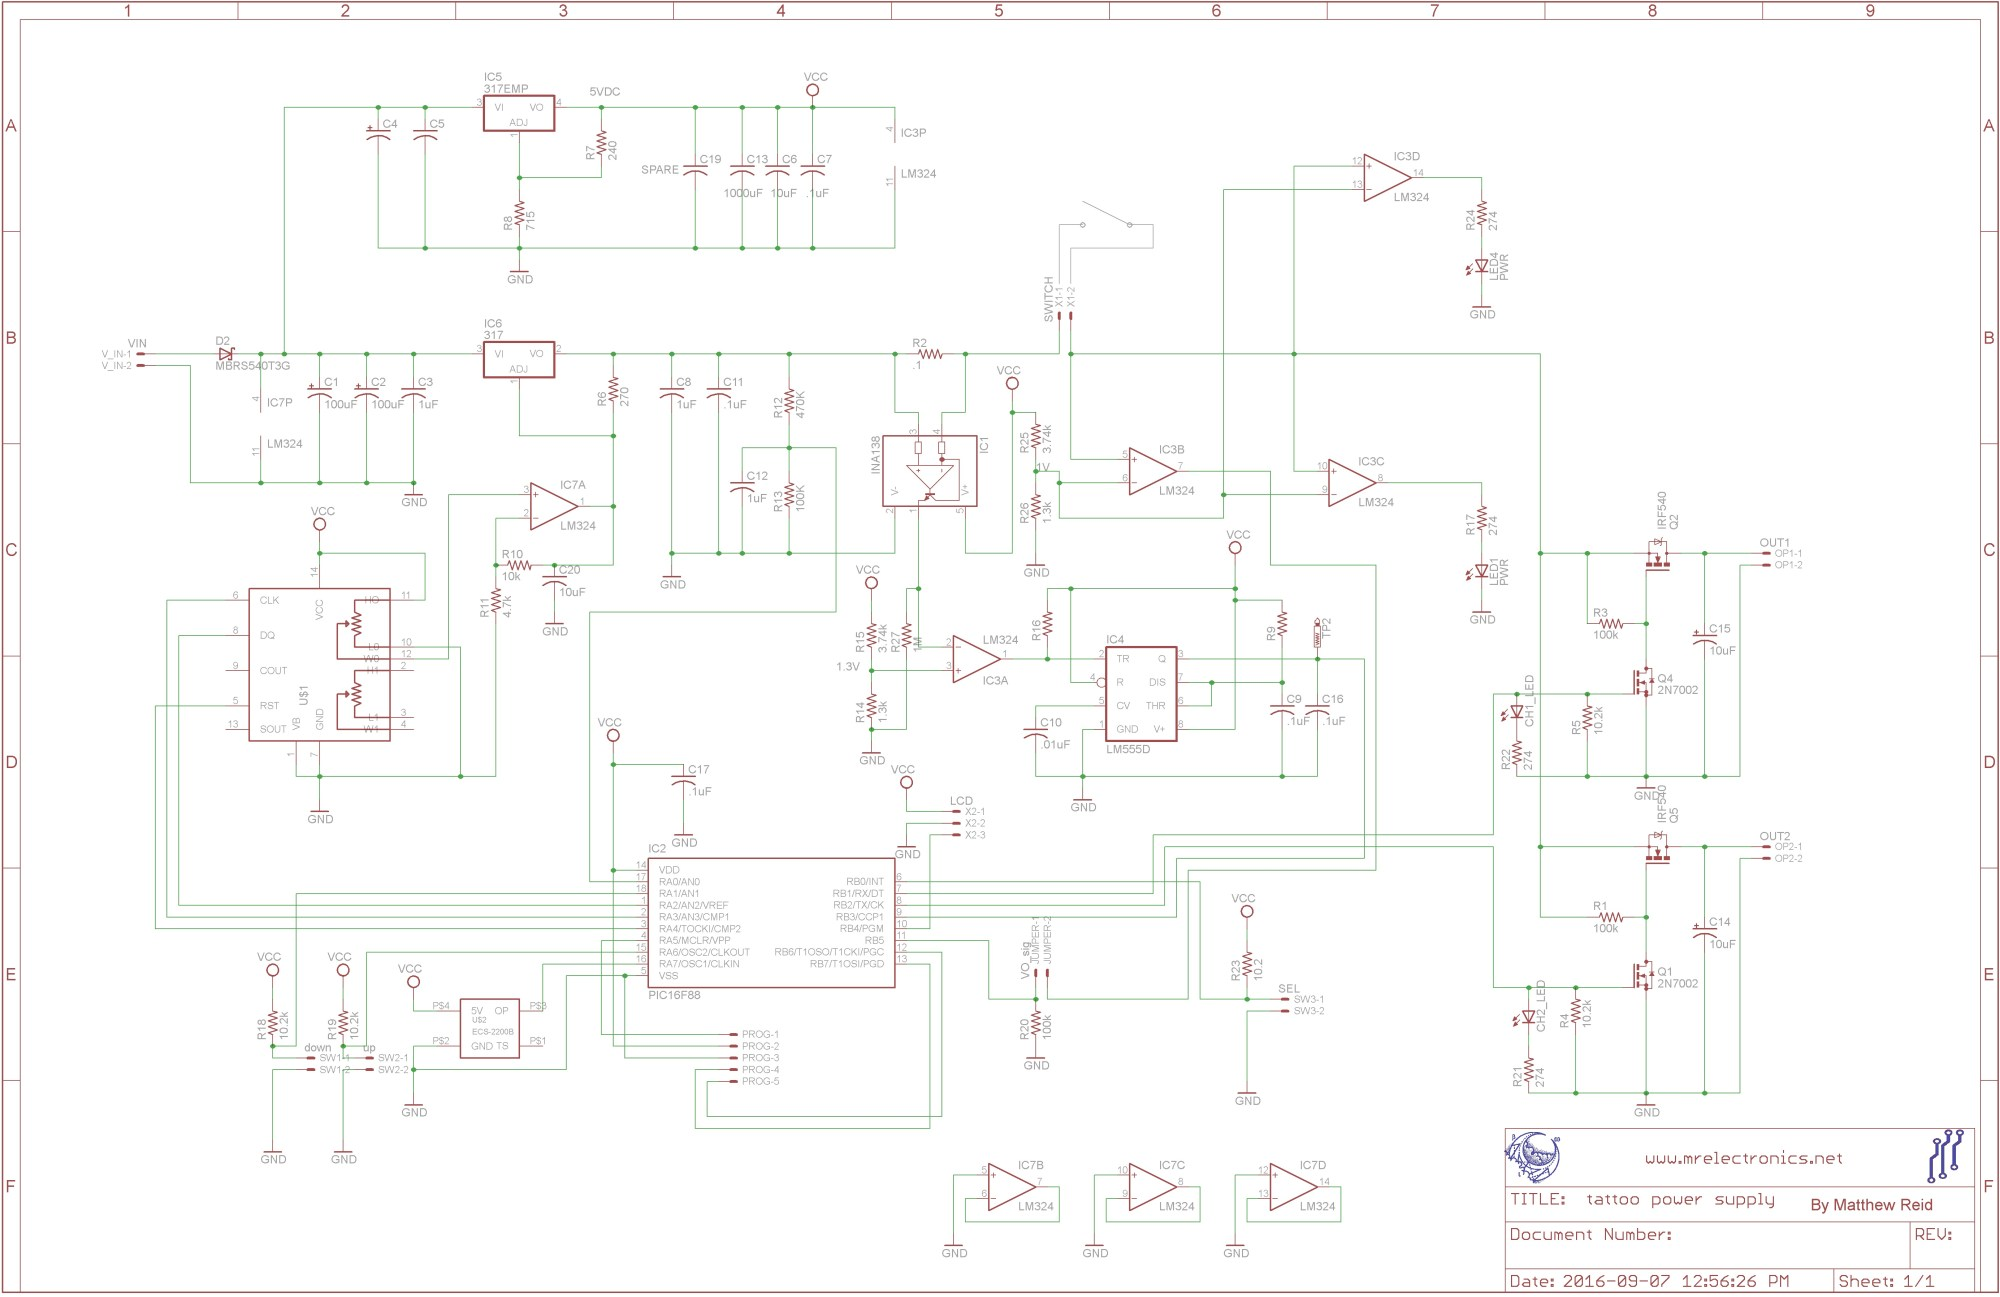 hight resolution of diagram also tattoo power supply on tattoo gun power supply diagram tattoo power supply schematic for wiring